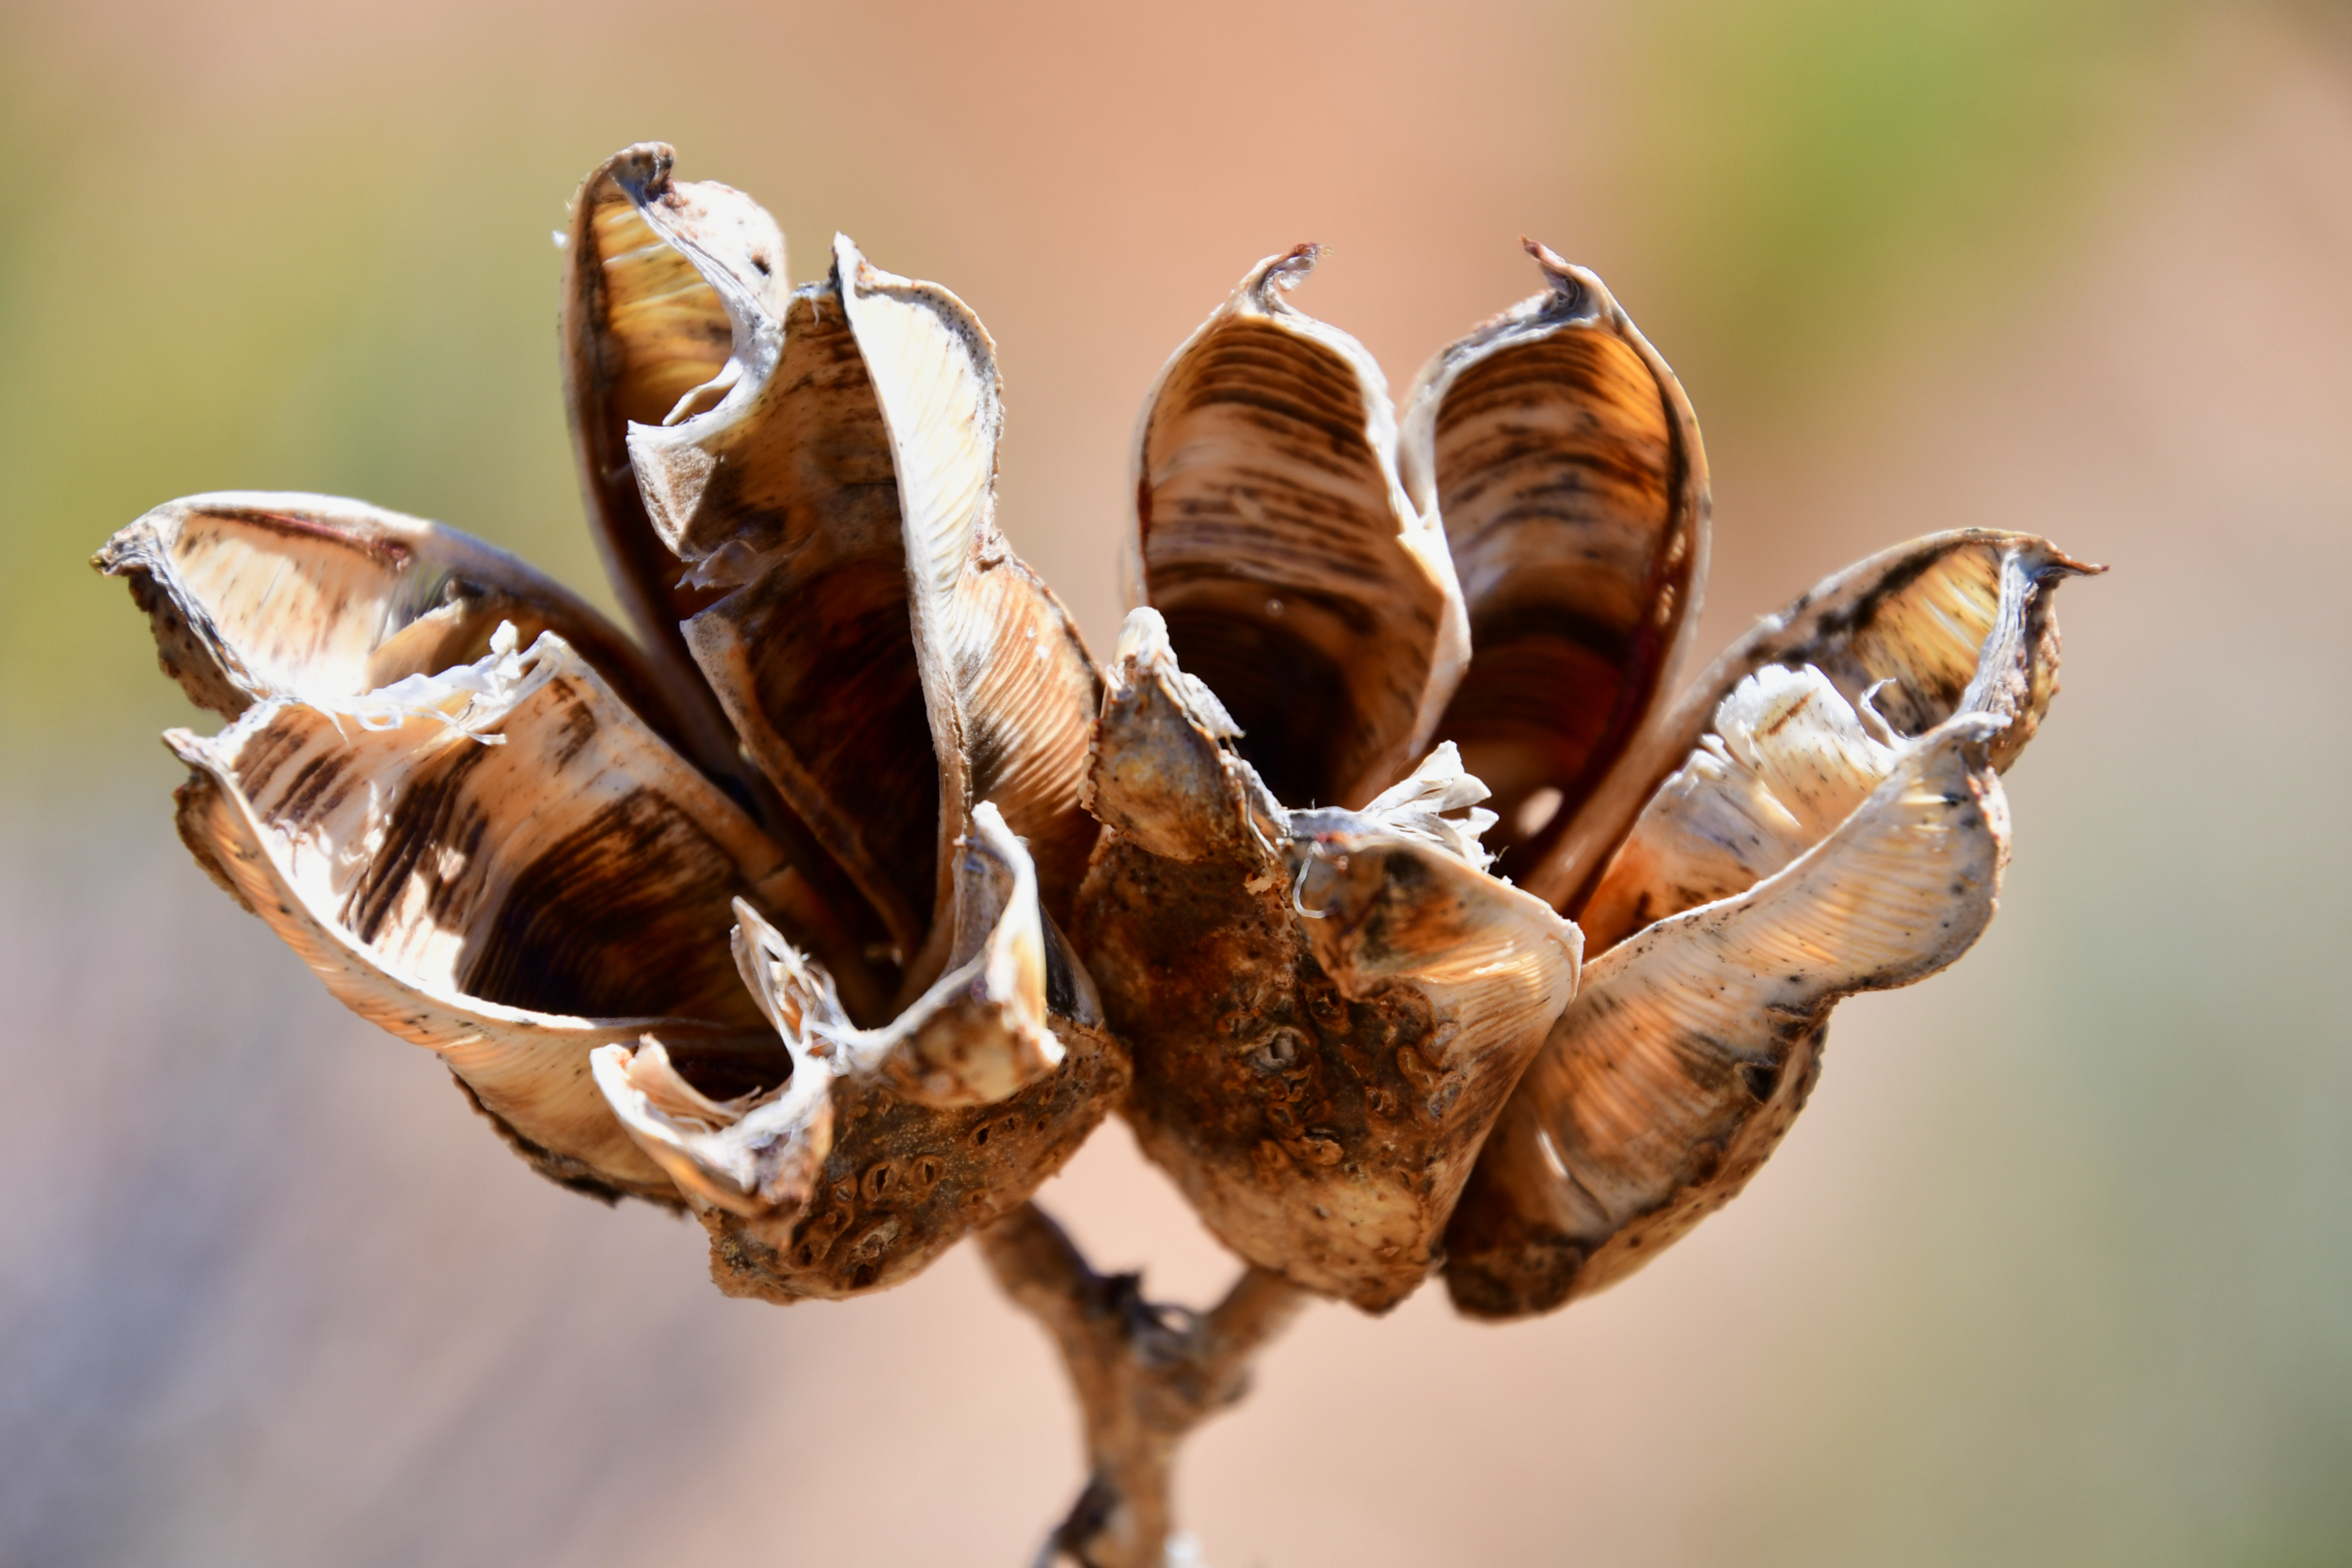 Soapweed Yucca Seed Pods